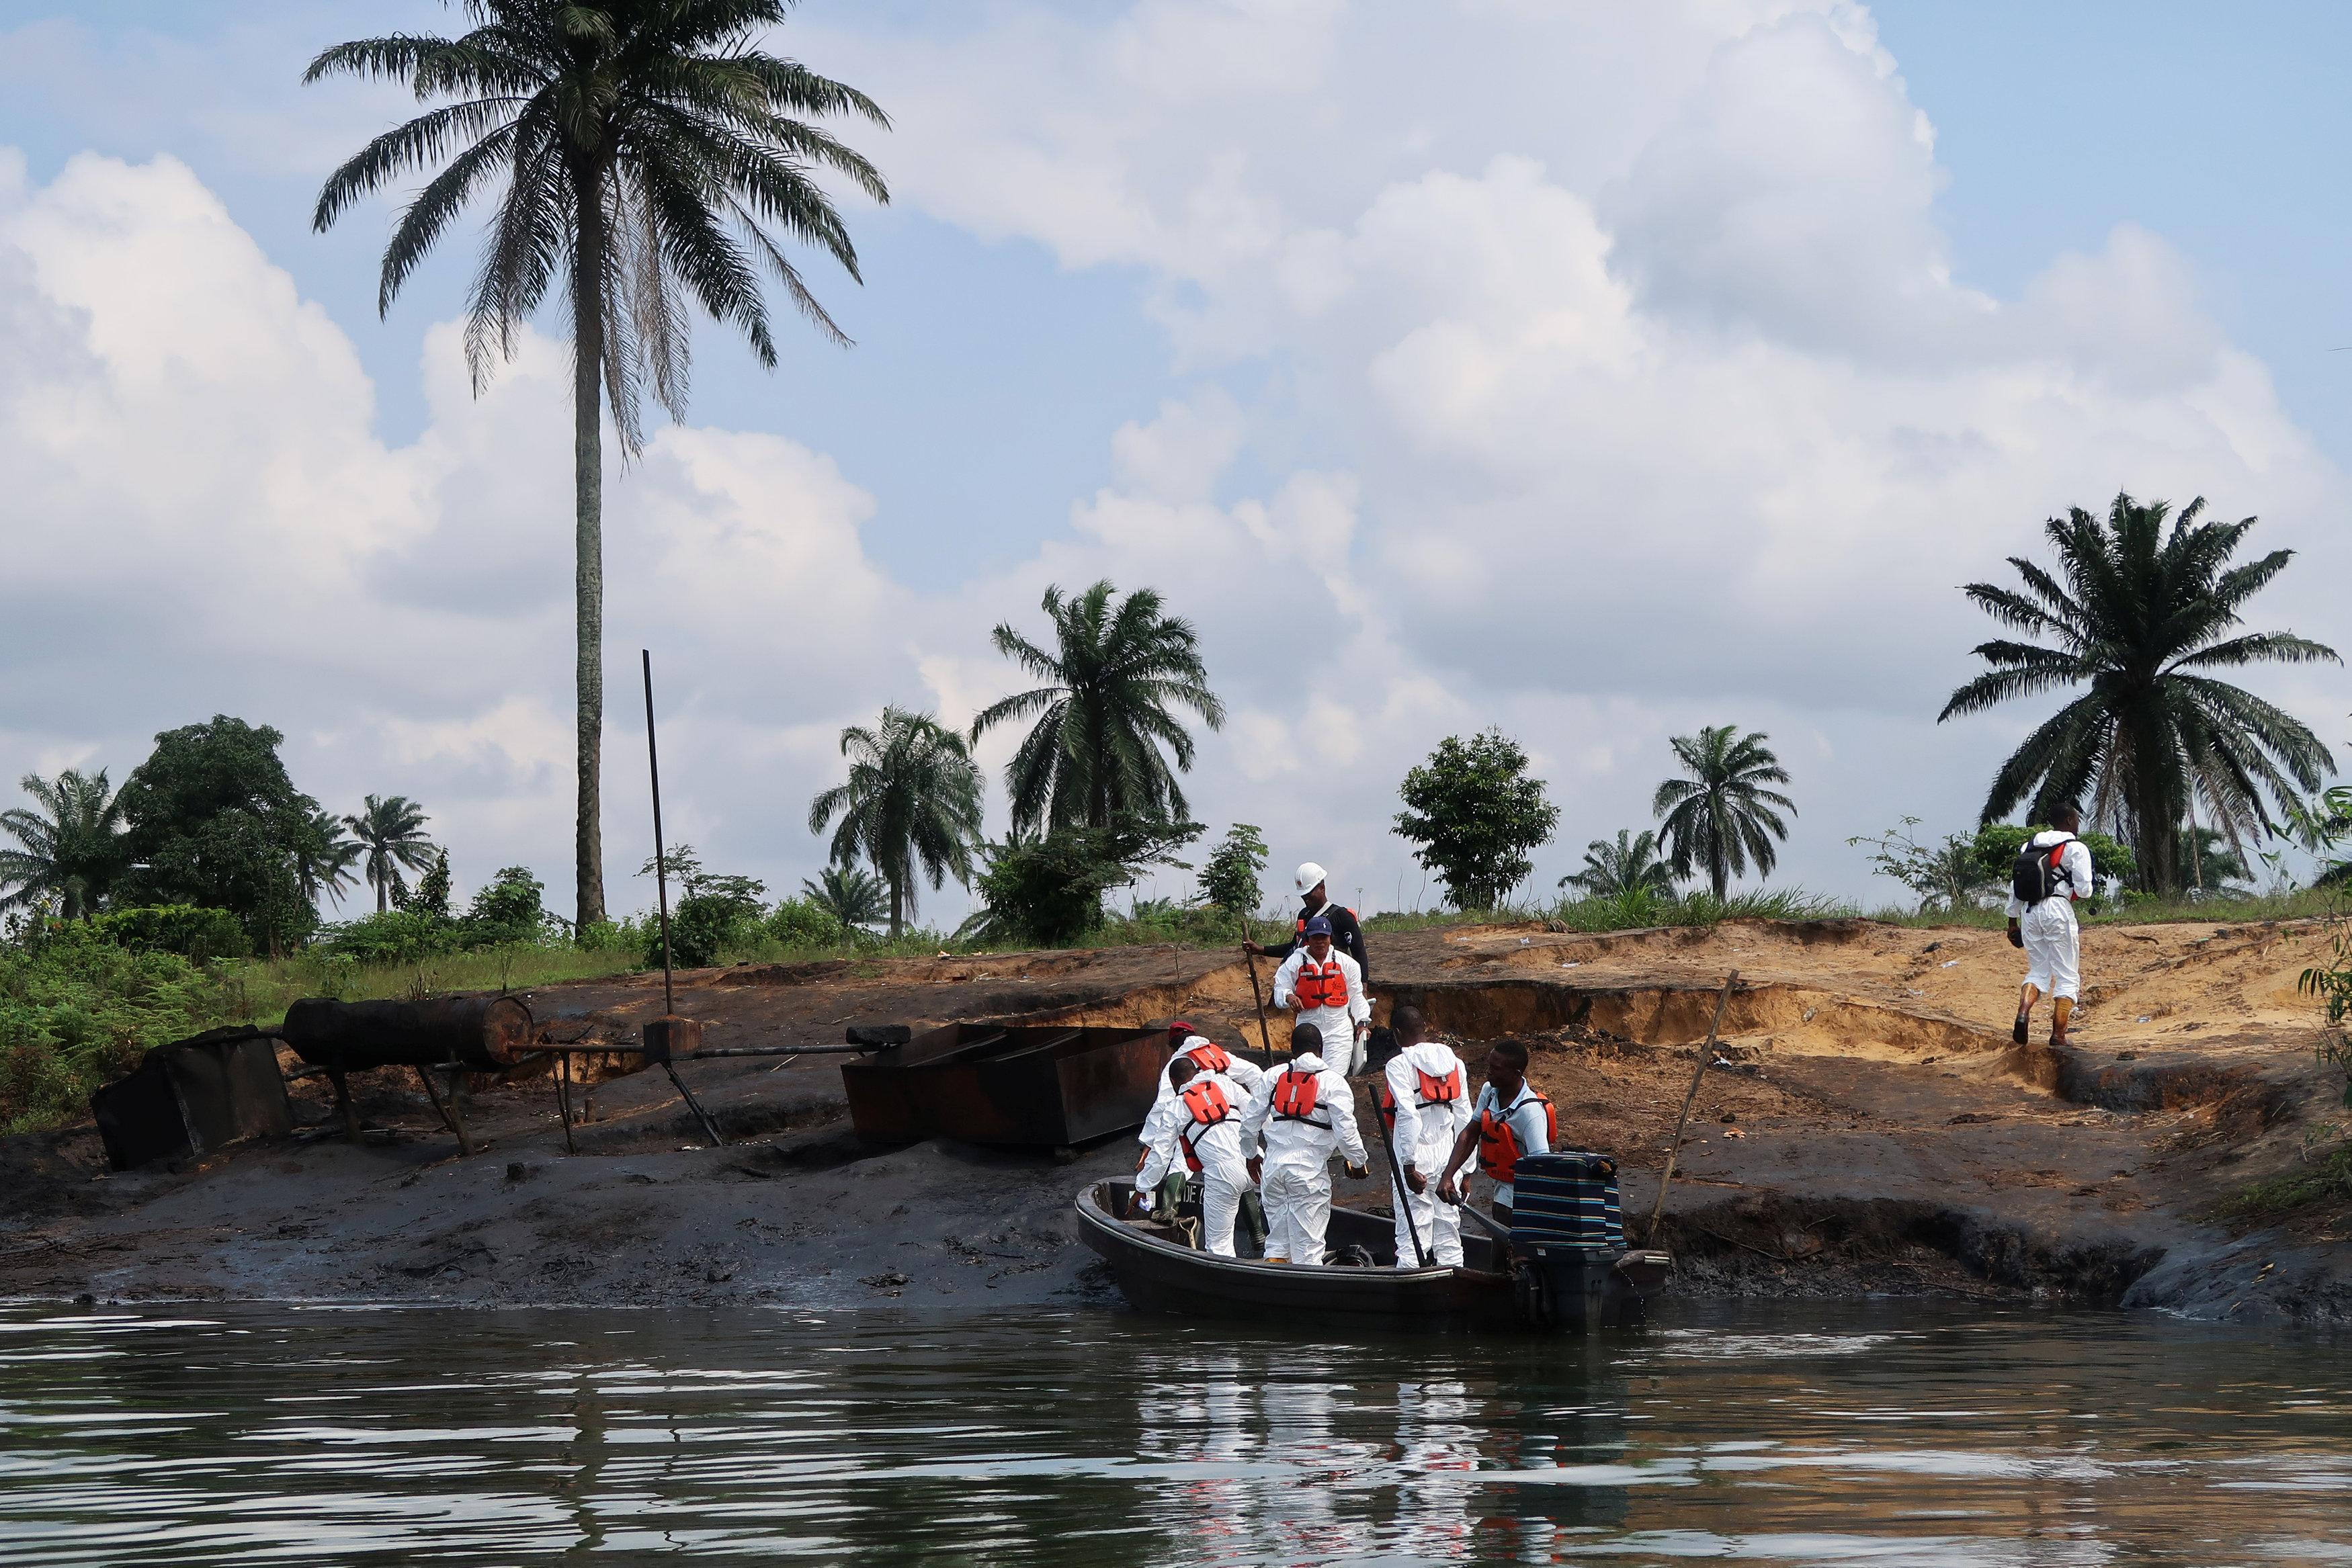 A team of the joint task force, part of the Bodo oil spill clean-up operation, disembarks from a boat at the site of an illegal refinery near the village of Bodo in the Niger Delta, Nigeria August 2, 2018.  Ron Bousso